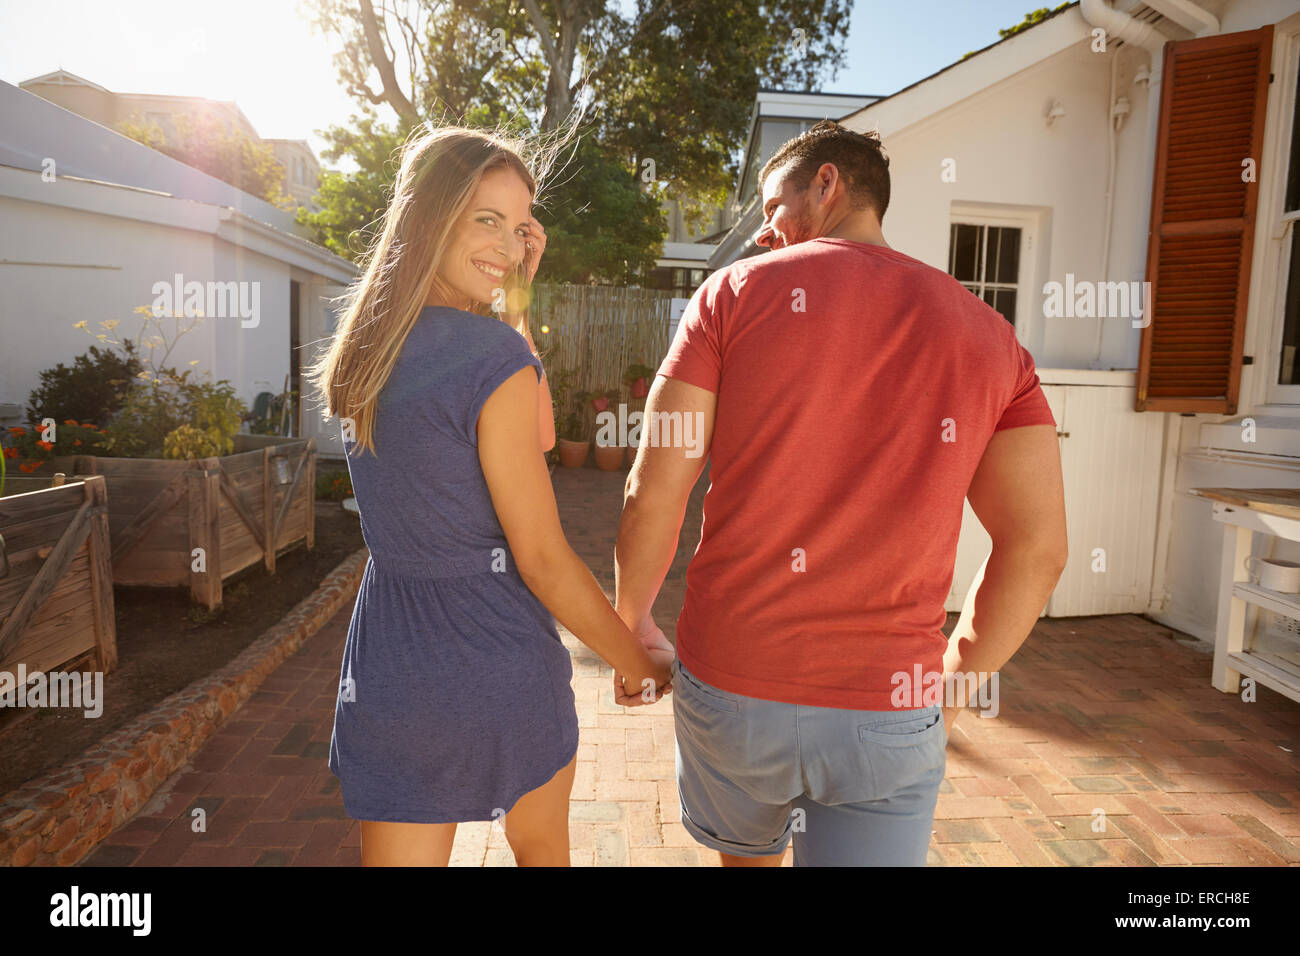 Young couple walking to their house holding hand in hand on a bright summer day, with woman looking back over shoulder and smili Stock Photo